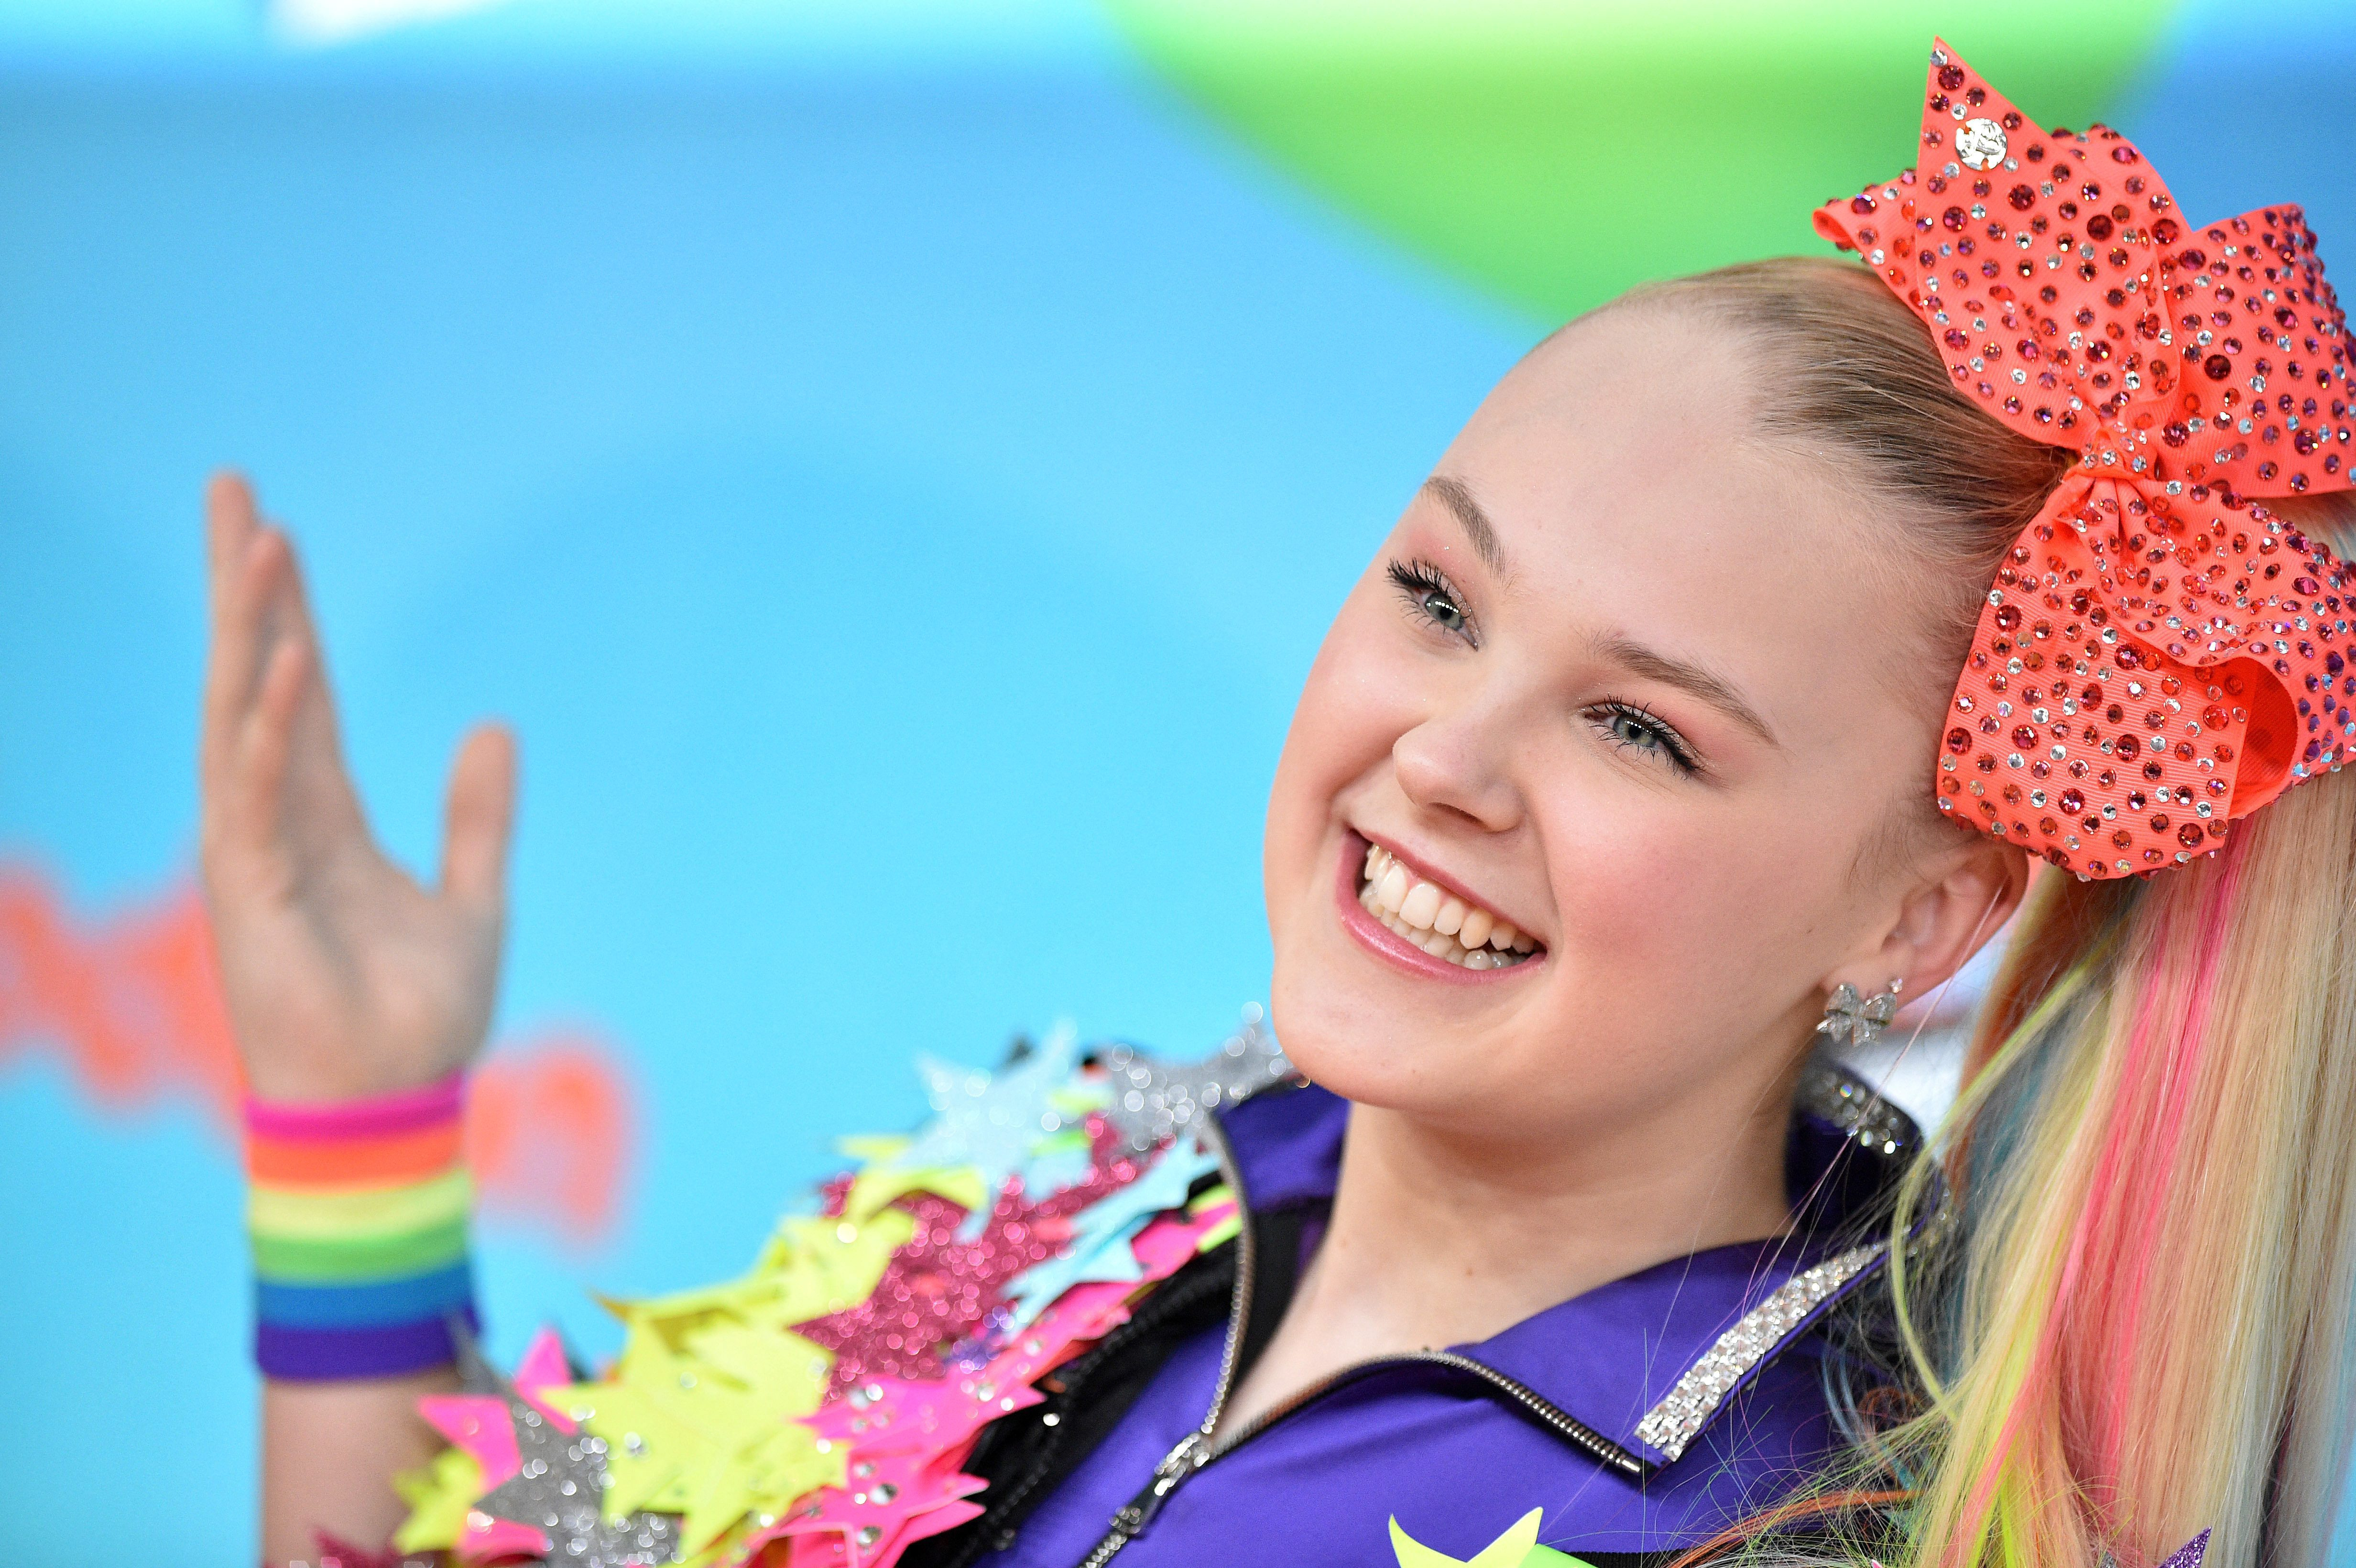 JoJo Siwa Thanks Her Fans After Coming Out, 'I Have Never Ever Been This Happy Before'